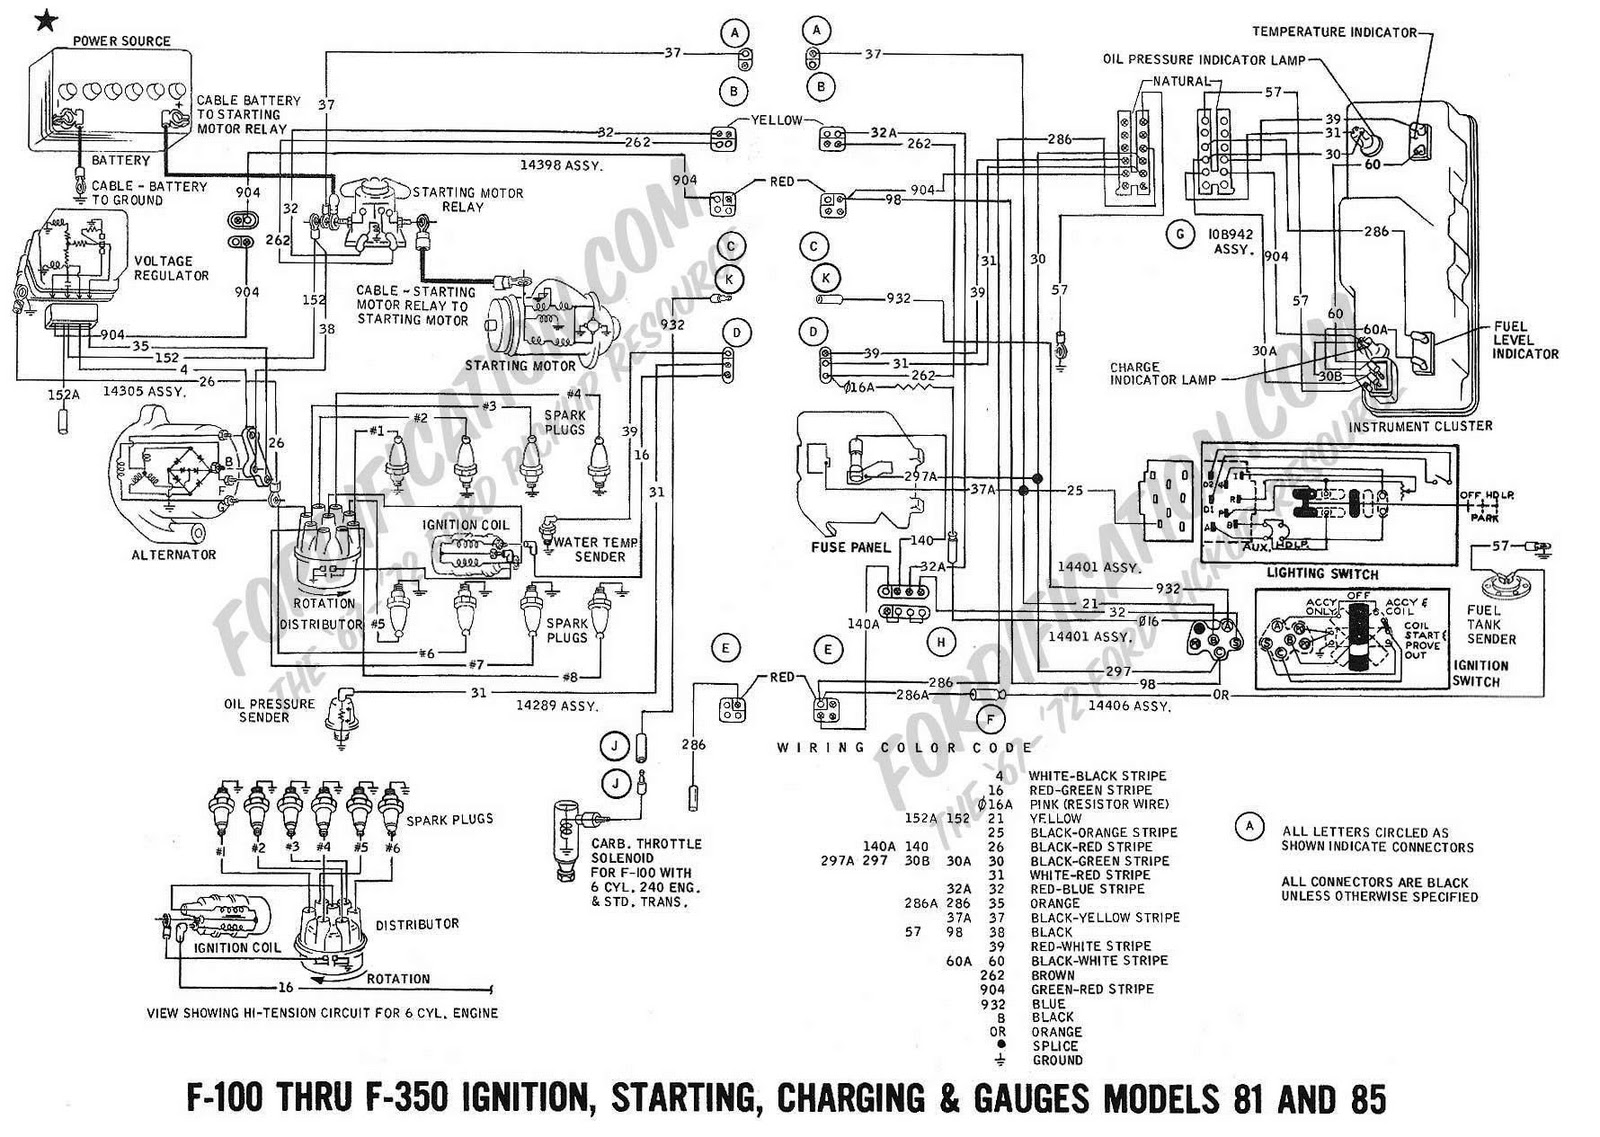 ford wiring schematics ford image wiring diagram 2011 ford f350 wiring diagram 2011 wiring diagrams on ford wiring schematics